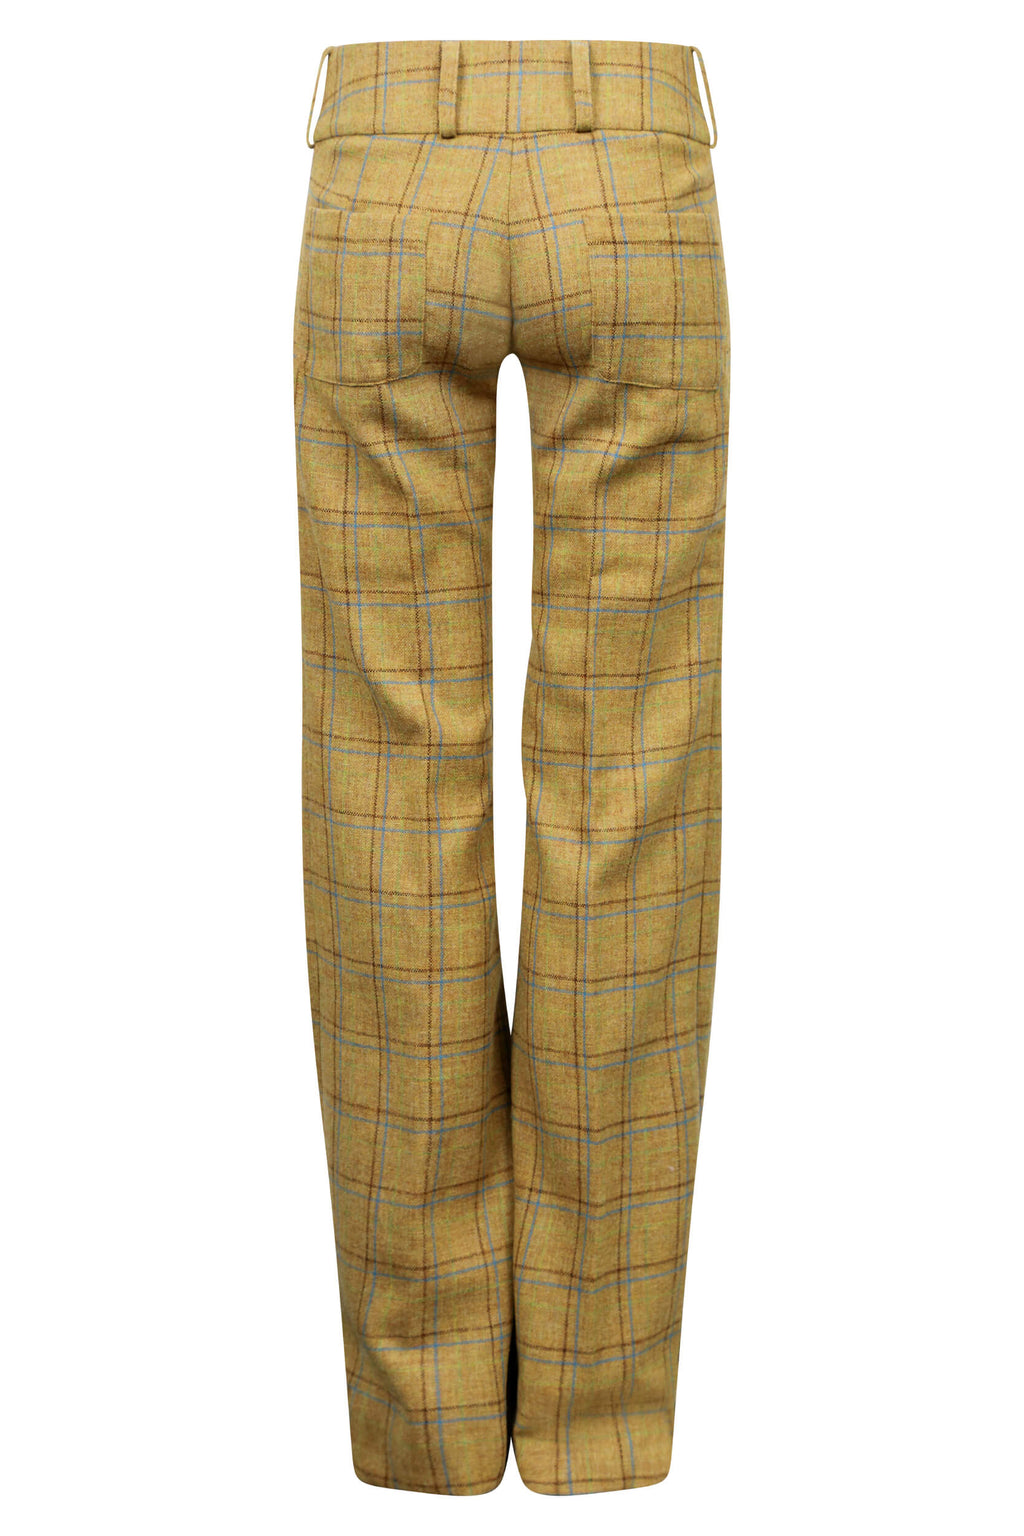 mustard-check-scottish-bespoke-tweed-trousers-womens